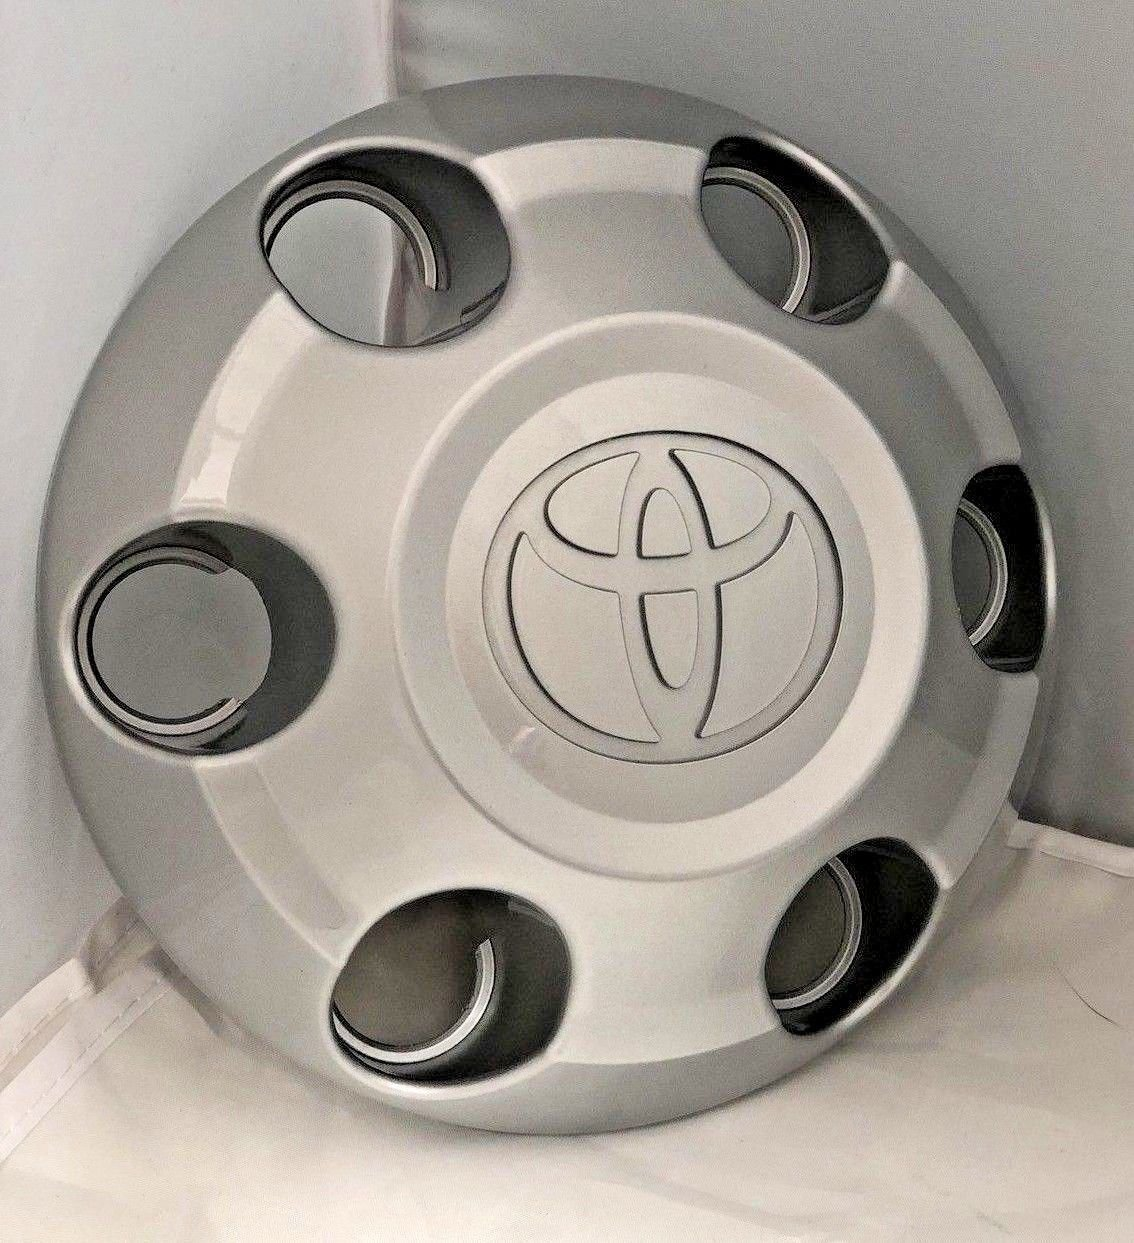 OEM TOYOTA TACOMA 2005-2013 WHEEL CENTER CAP HUBCAP 42603-AD050 HOL 69459